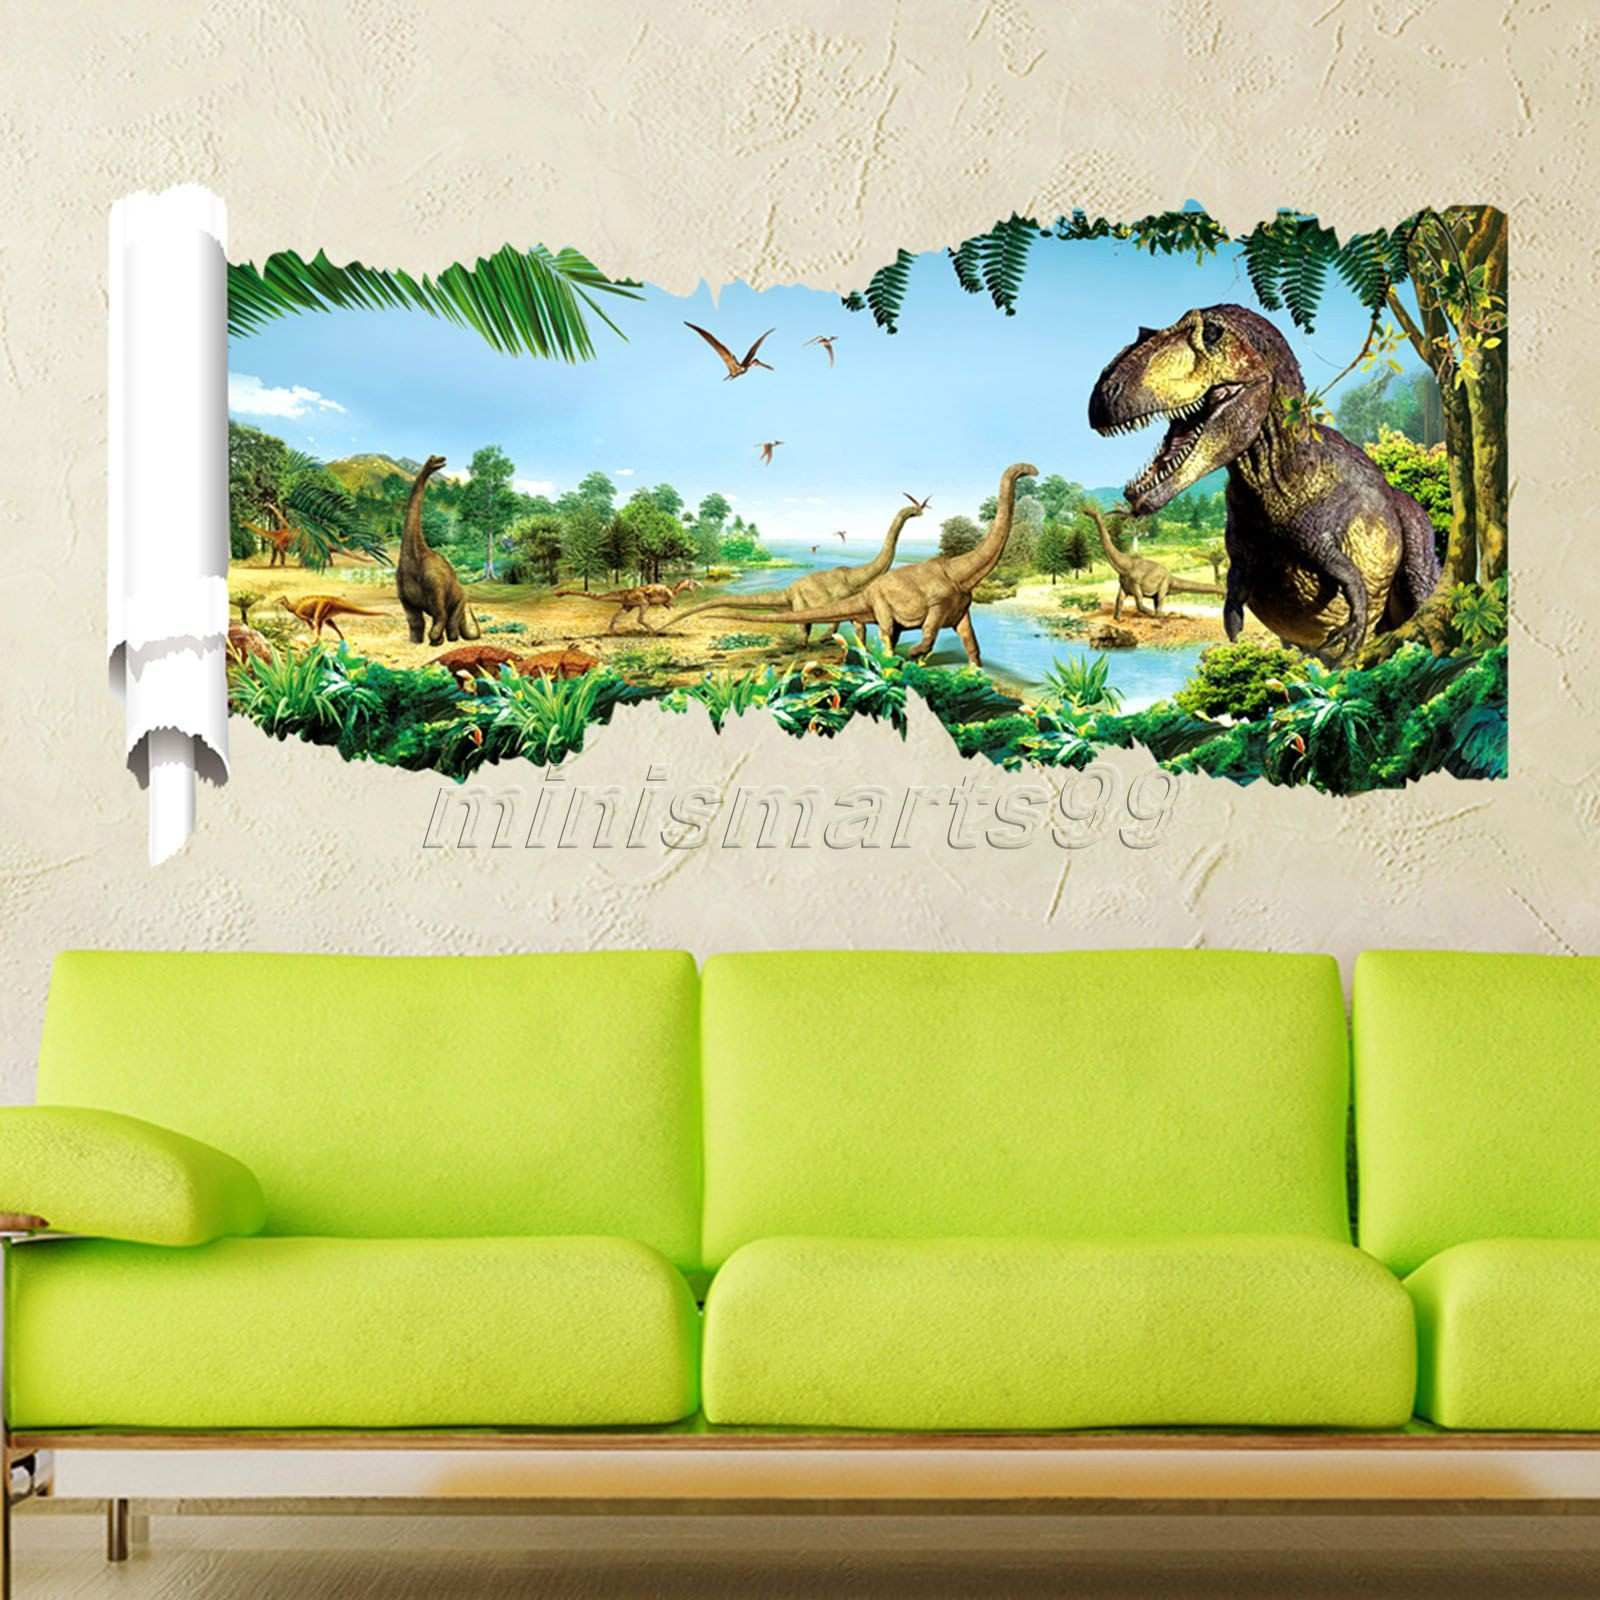 3d Through Dinosaur Wall Stickers Decals for Kids Rooms Art for Baby